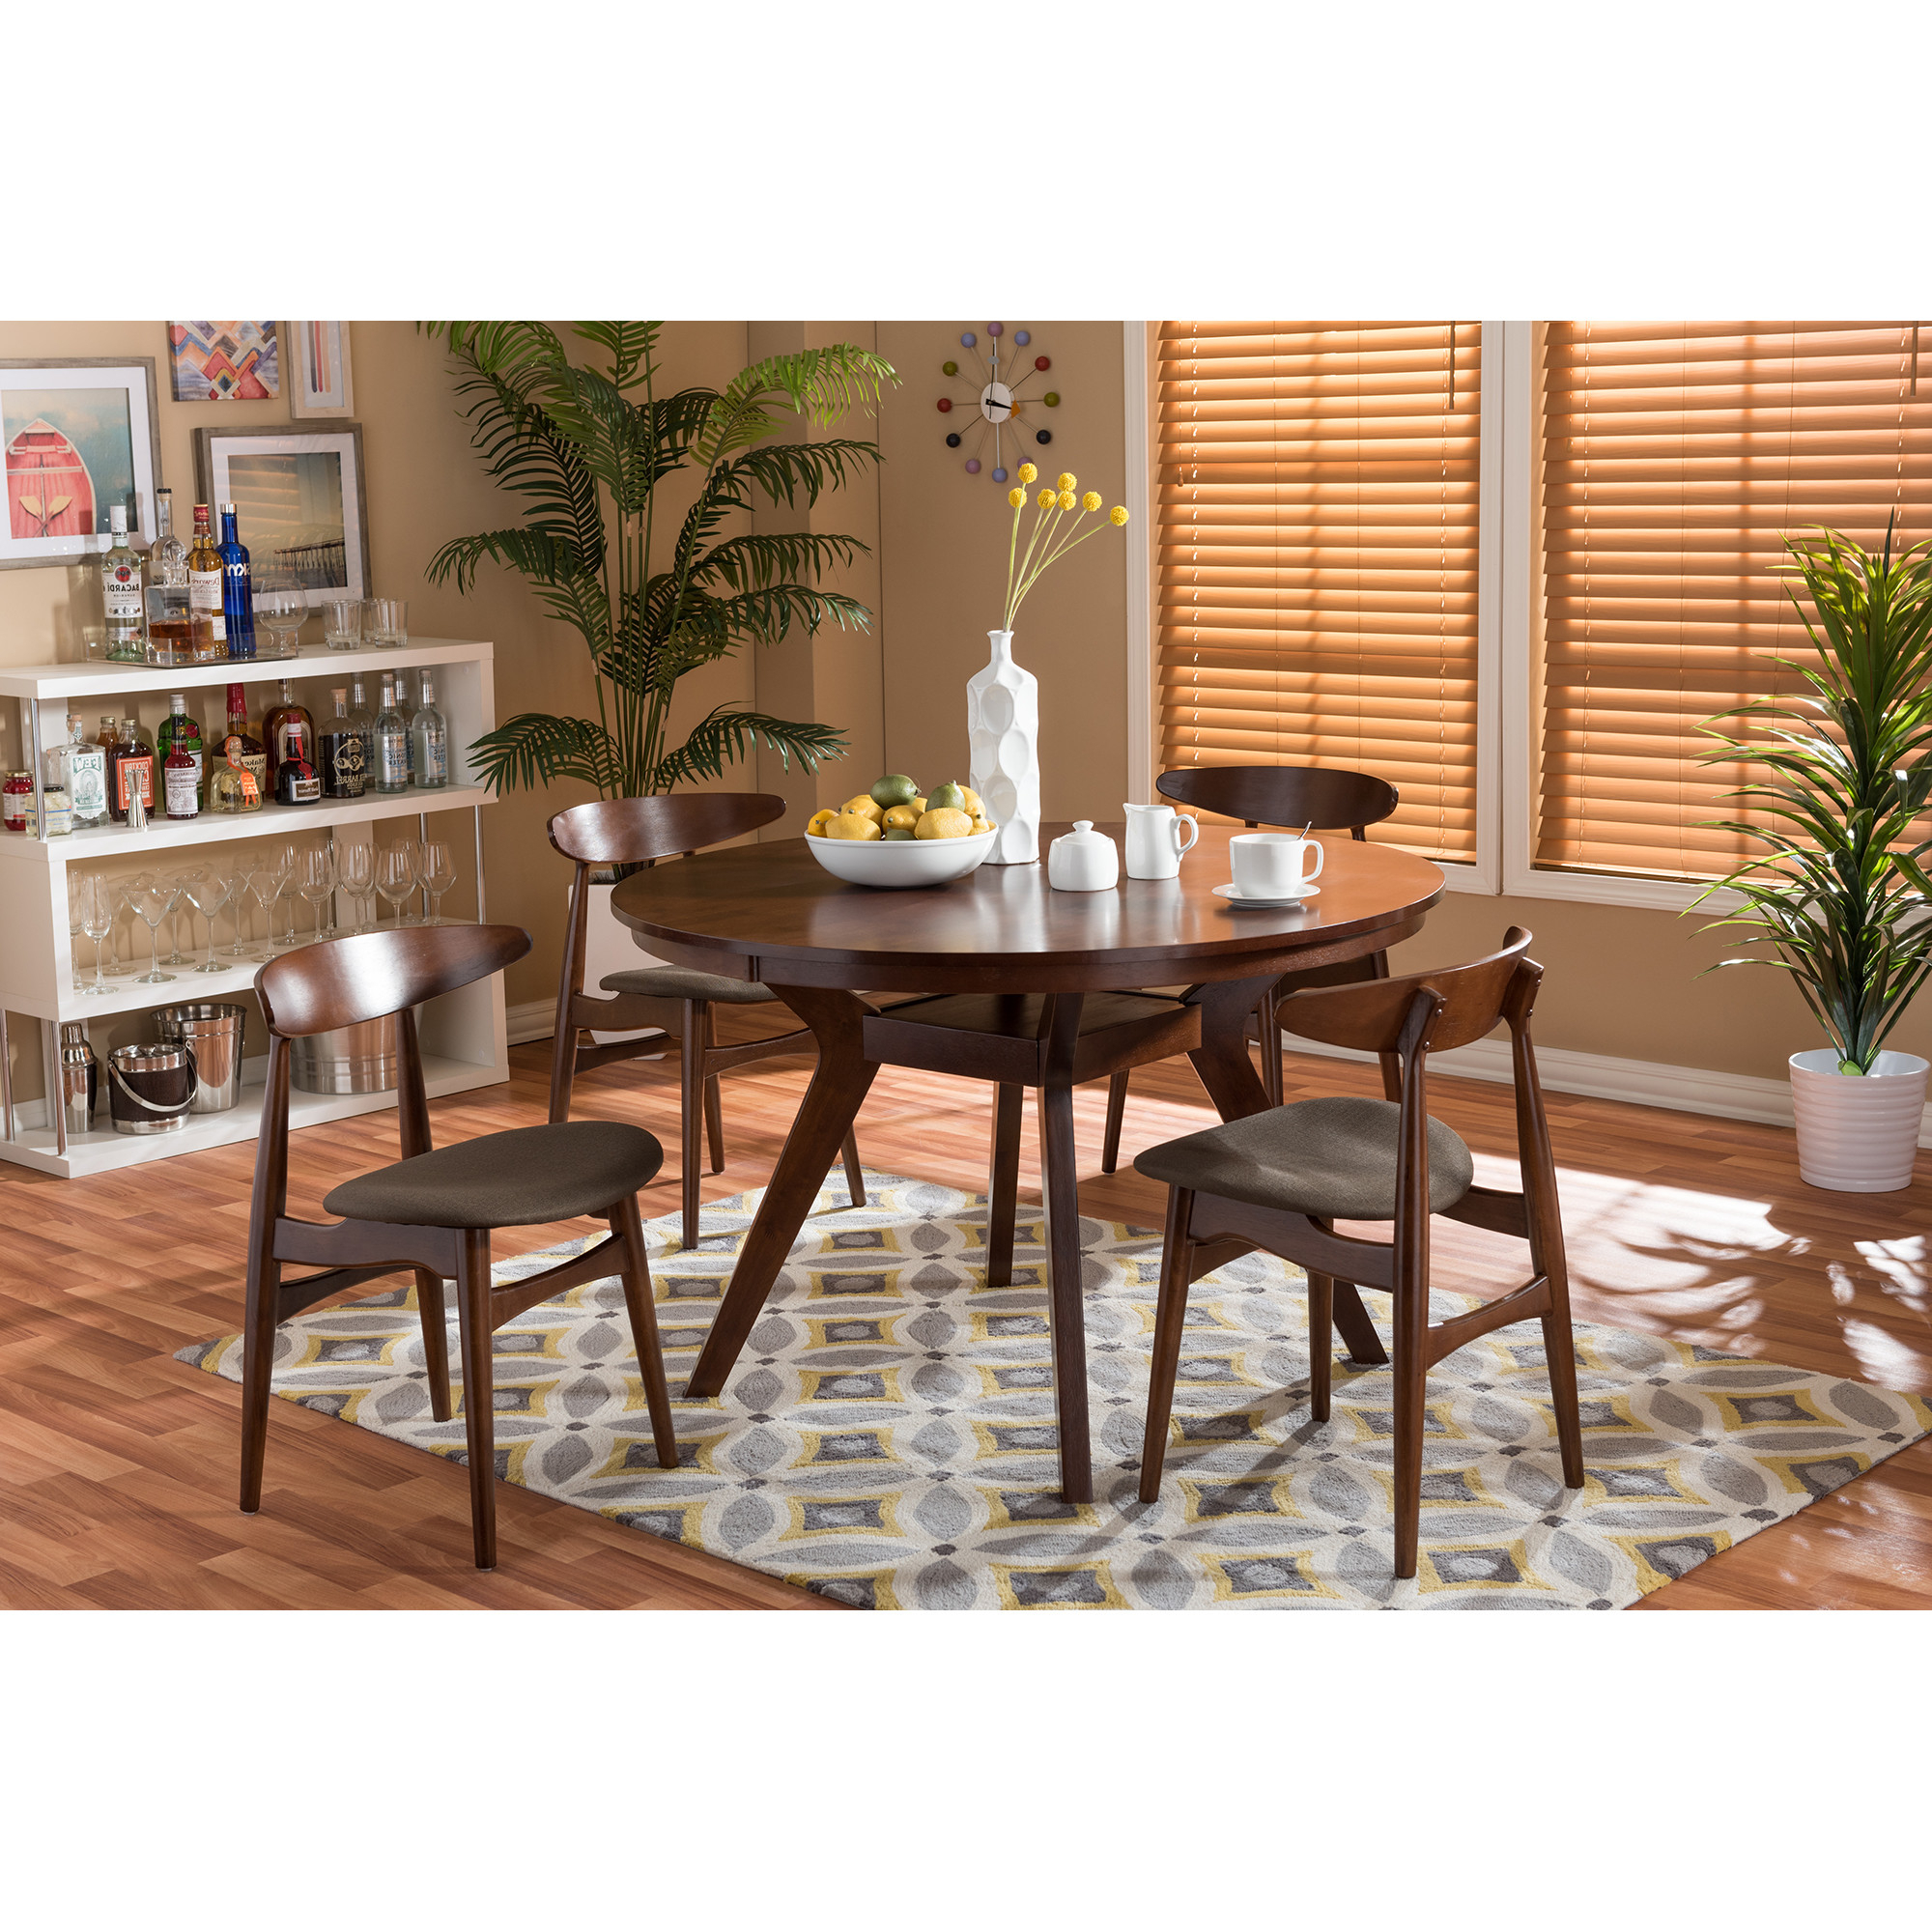 Preferred Baxton Studio Keitaro 5 Piece Dining Sets With Wholesale Dining Sets. Room Pier One (View 2 of 25)